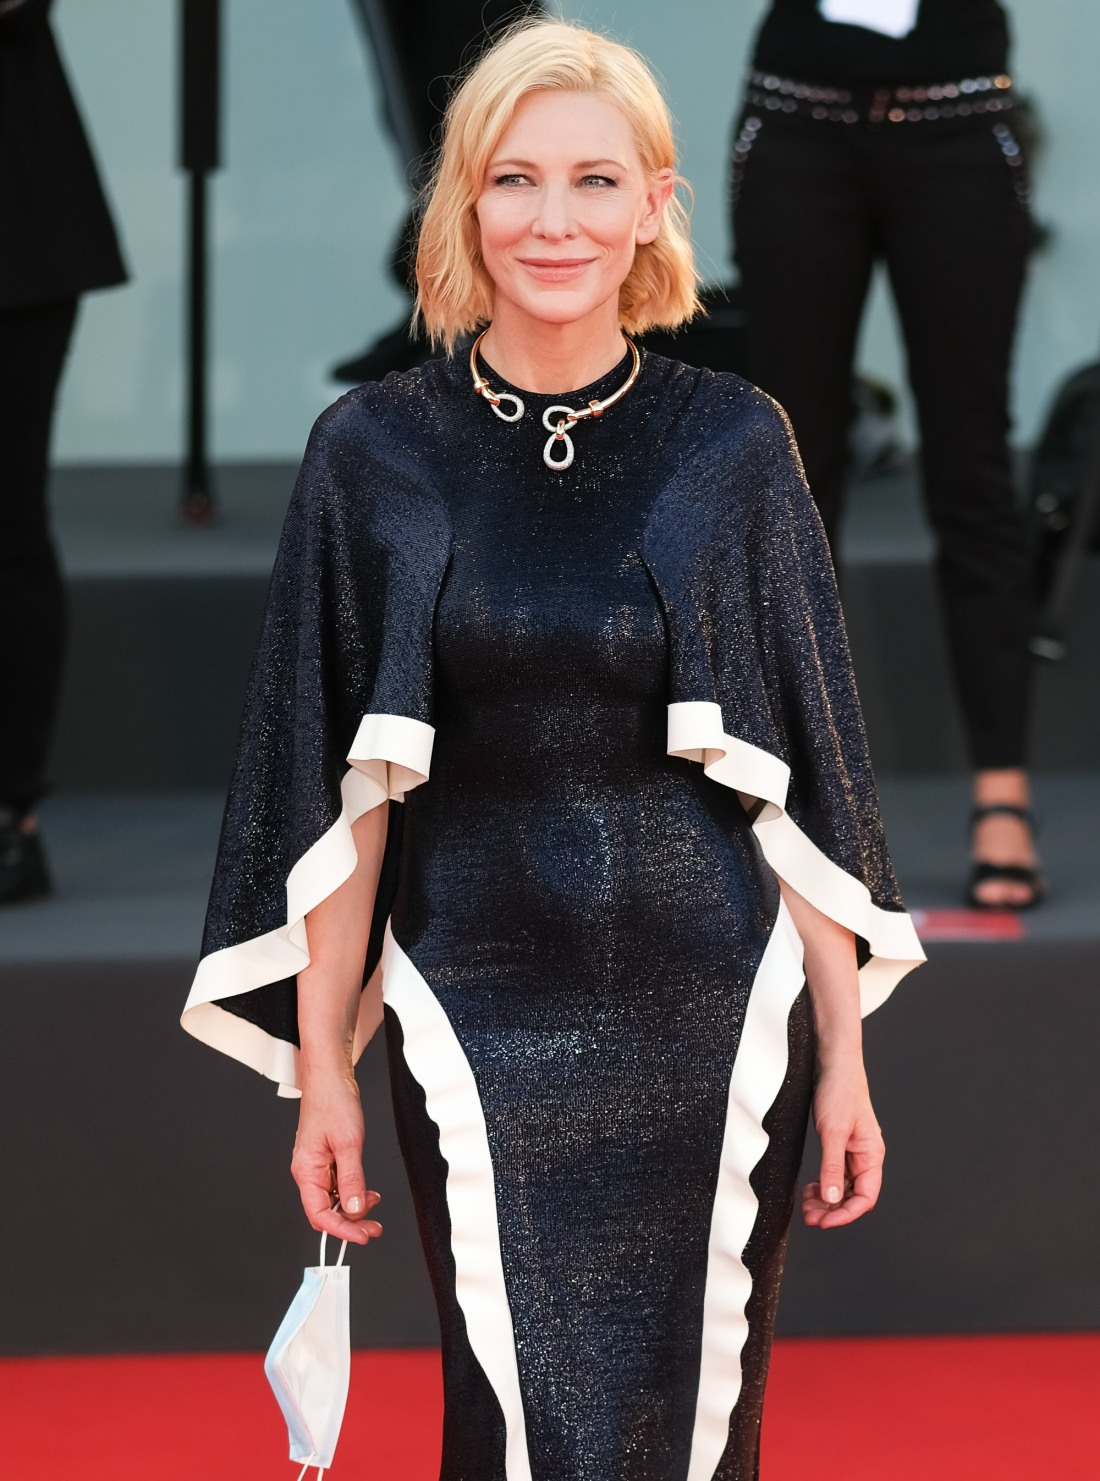 Cate Blanchett poses on the red carpet at Opening Ceremony for the 77th Venice International Film Festival ( Berlinale ) on Wednesday 2 September 2020